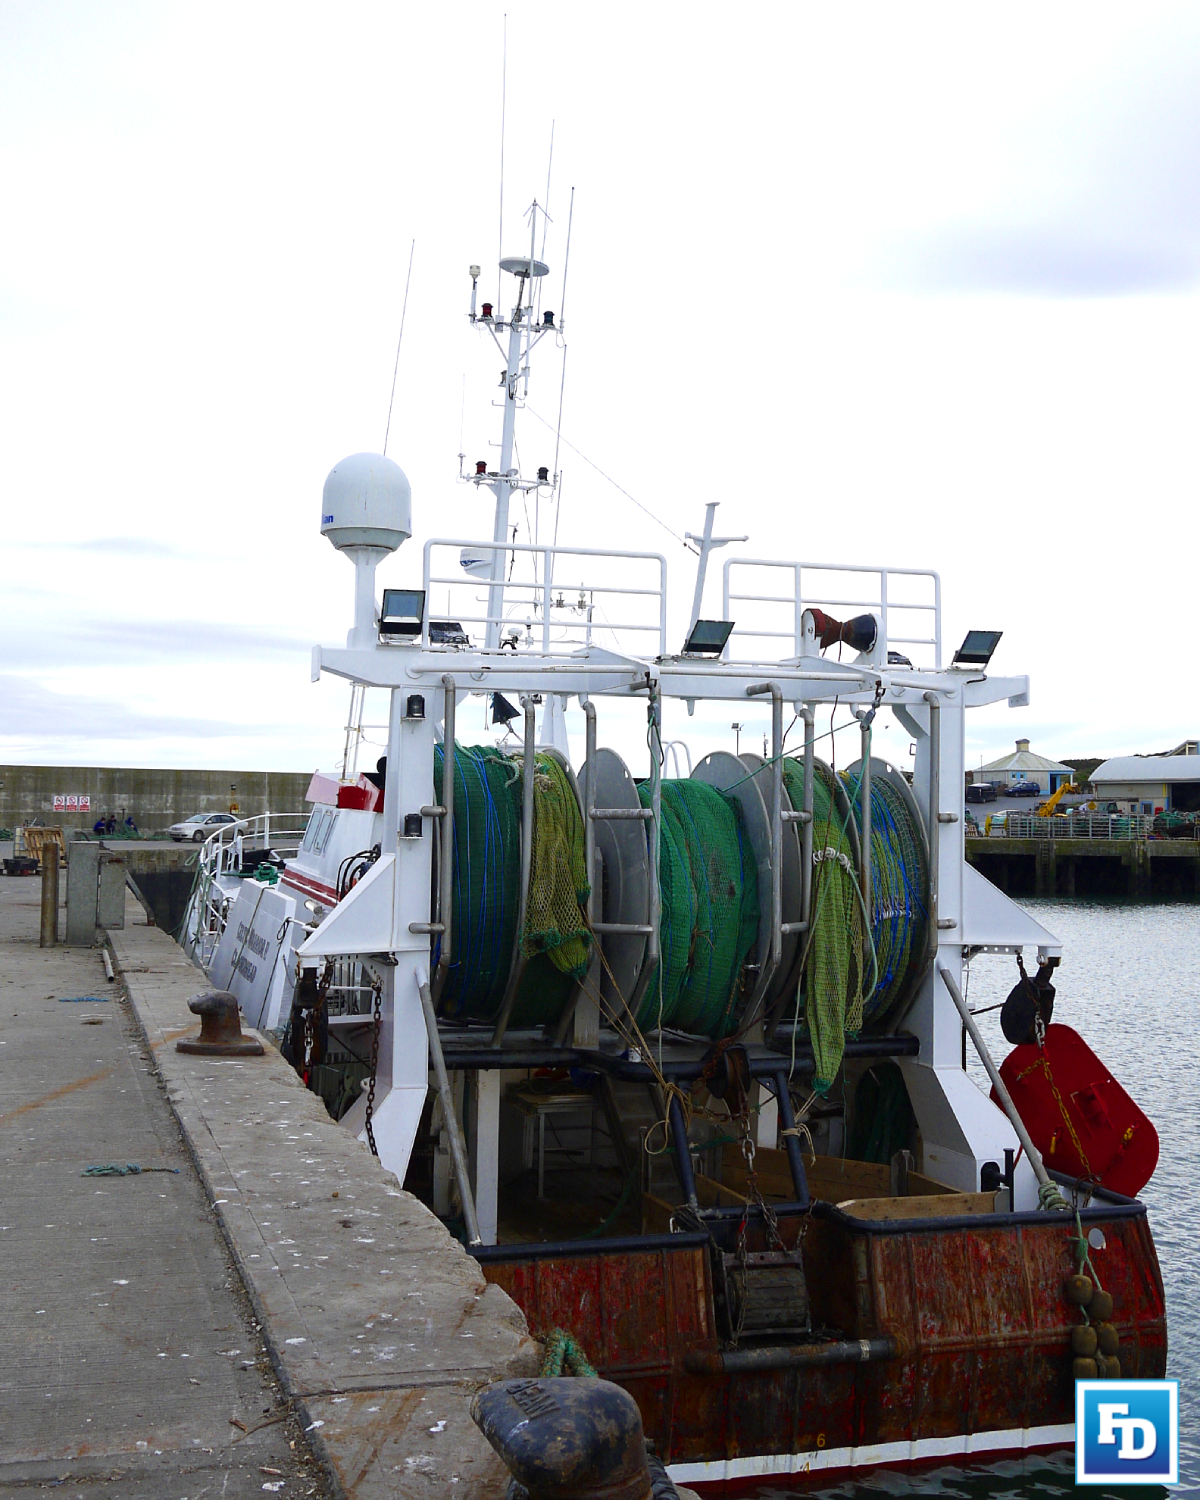 The political environmental report 'More Fish in the Seas' from the Greens/EFA has called for greater restrictions on fishing activities